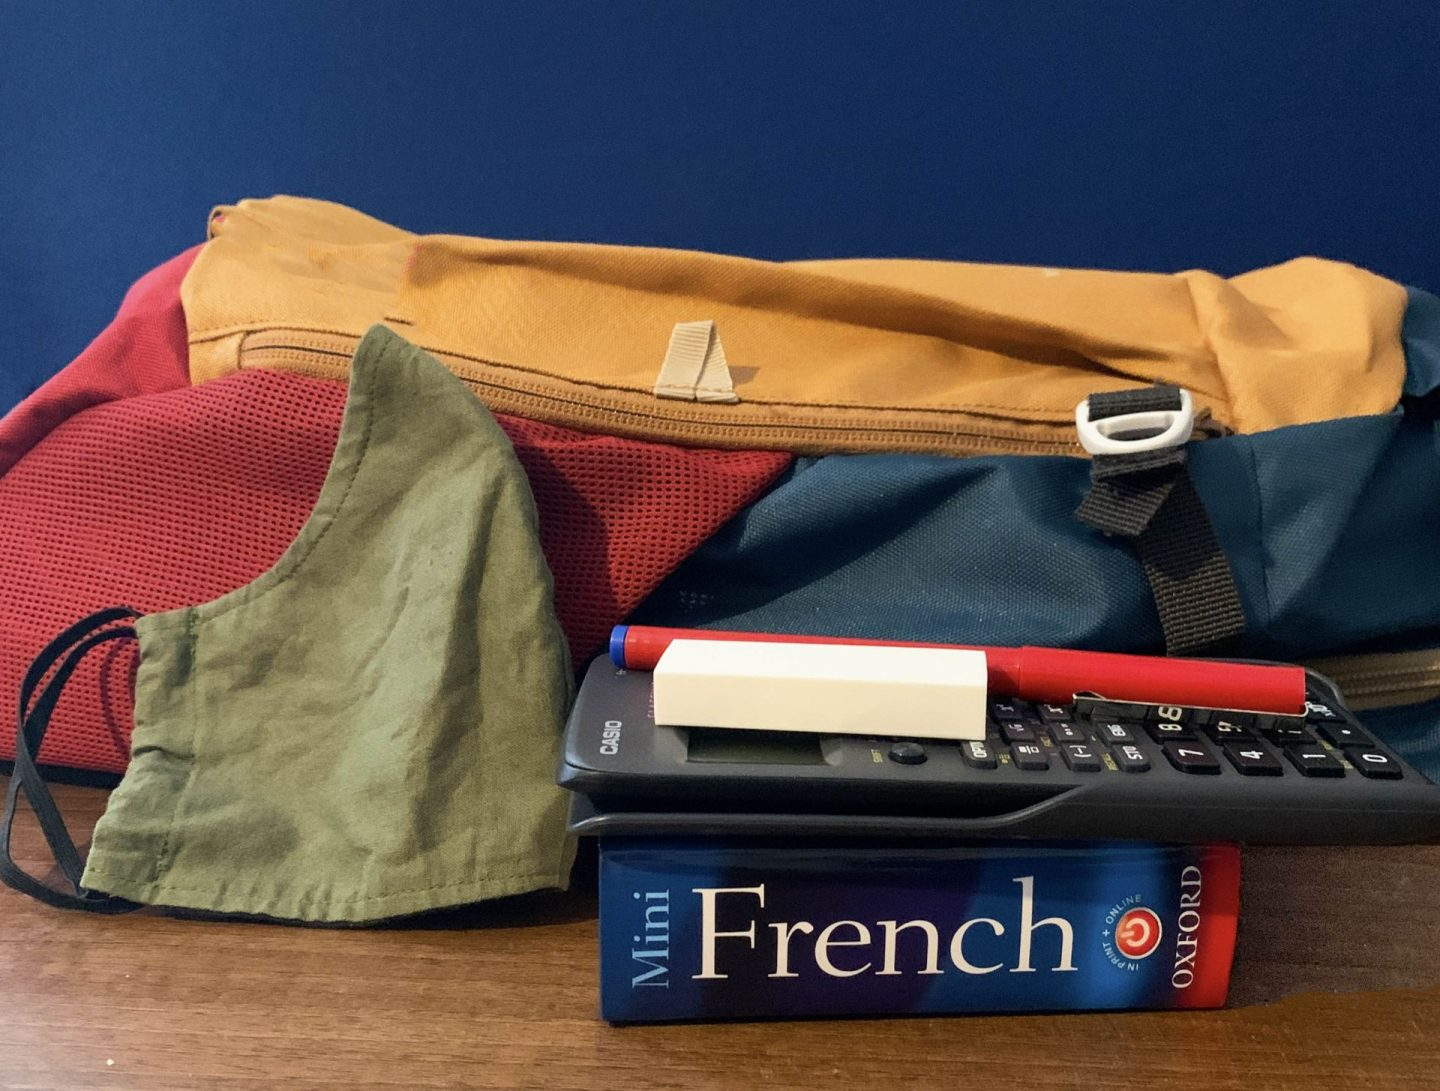 Back to school. School bag with face mask, book, calculator and pen.